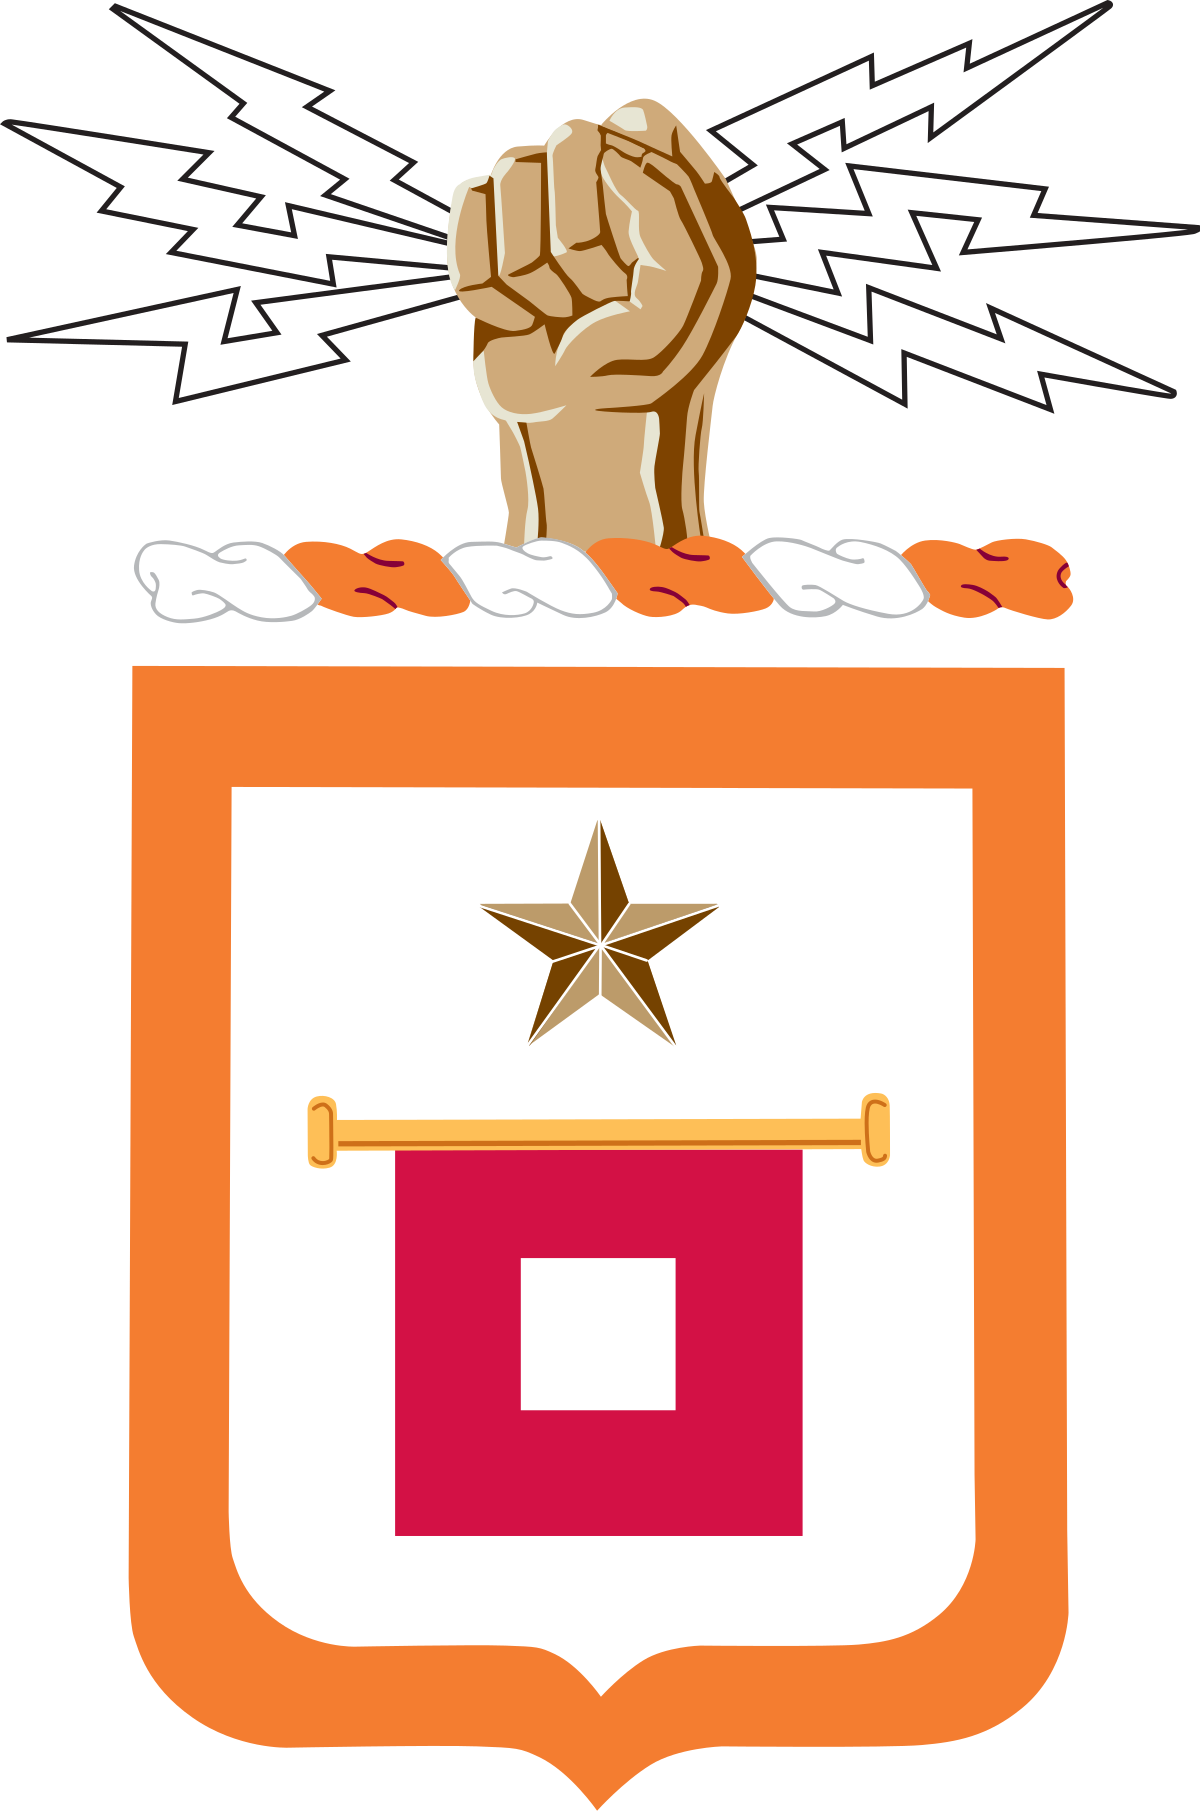 transparent stock Wars clipart army engineer. Signal corps united states.